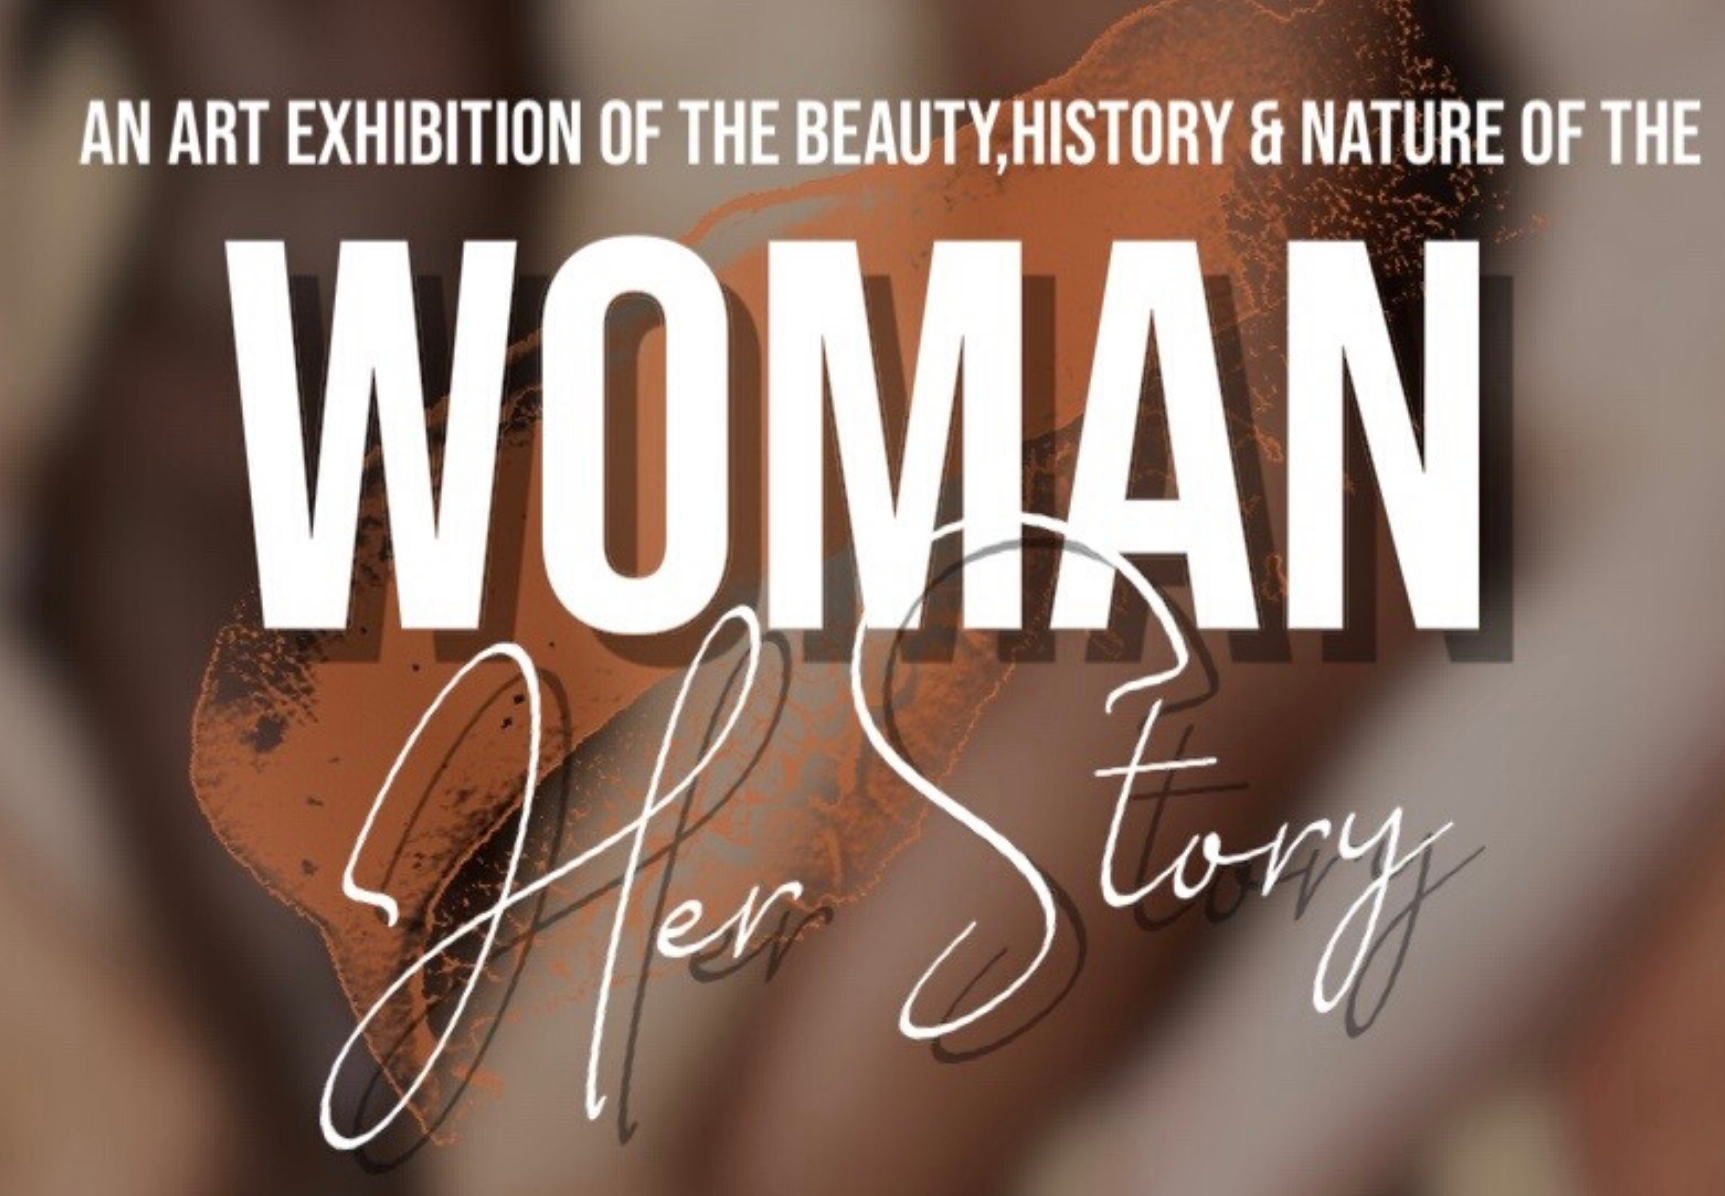 An art exhibition of the beauty, history and nature of the woman: Her Story.